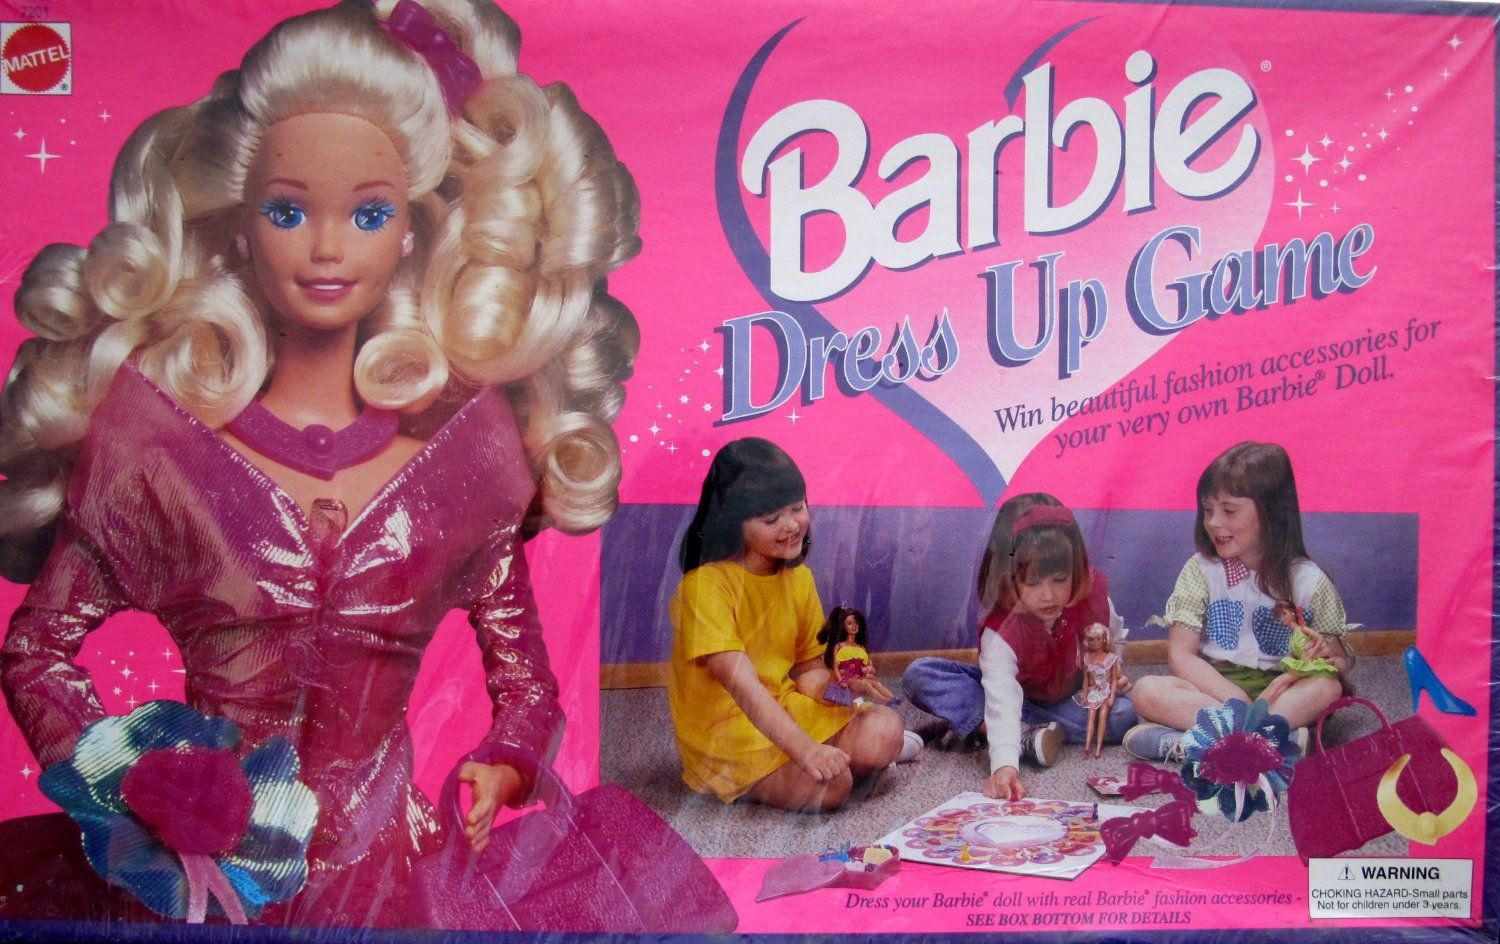 Barbie Dress Up Game Barbie dress up games, Barbie, Up game